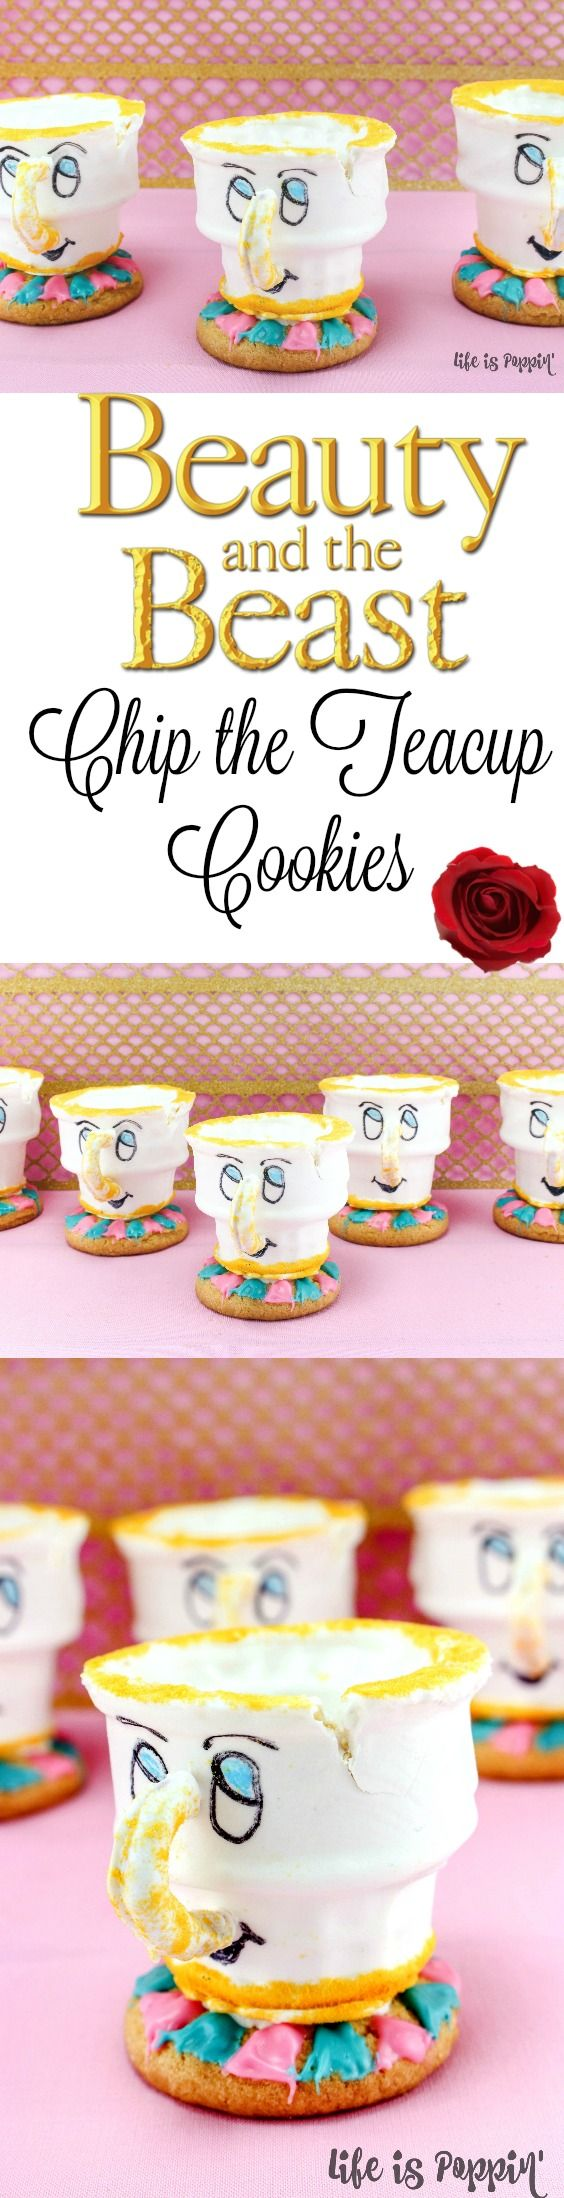 Calling all Disney fans! As many of you know, it's Beauty and the Beast month and we are celebrating with these adorable Chip the Teacup cookies!   http://lifeispoppin.com/beauty-and-the-beast-cookies-chip-the-teacup/